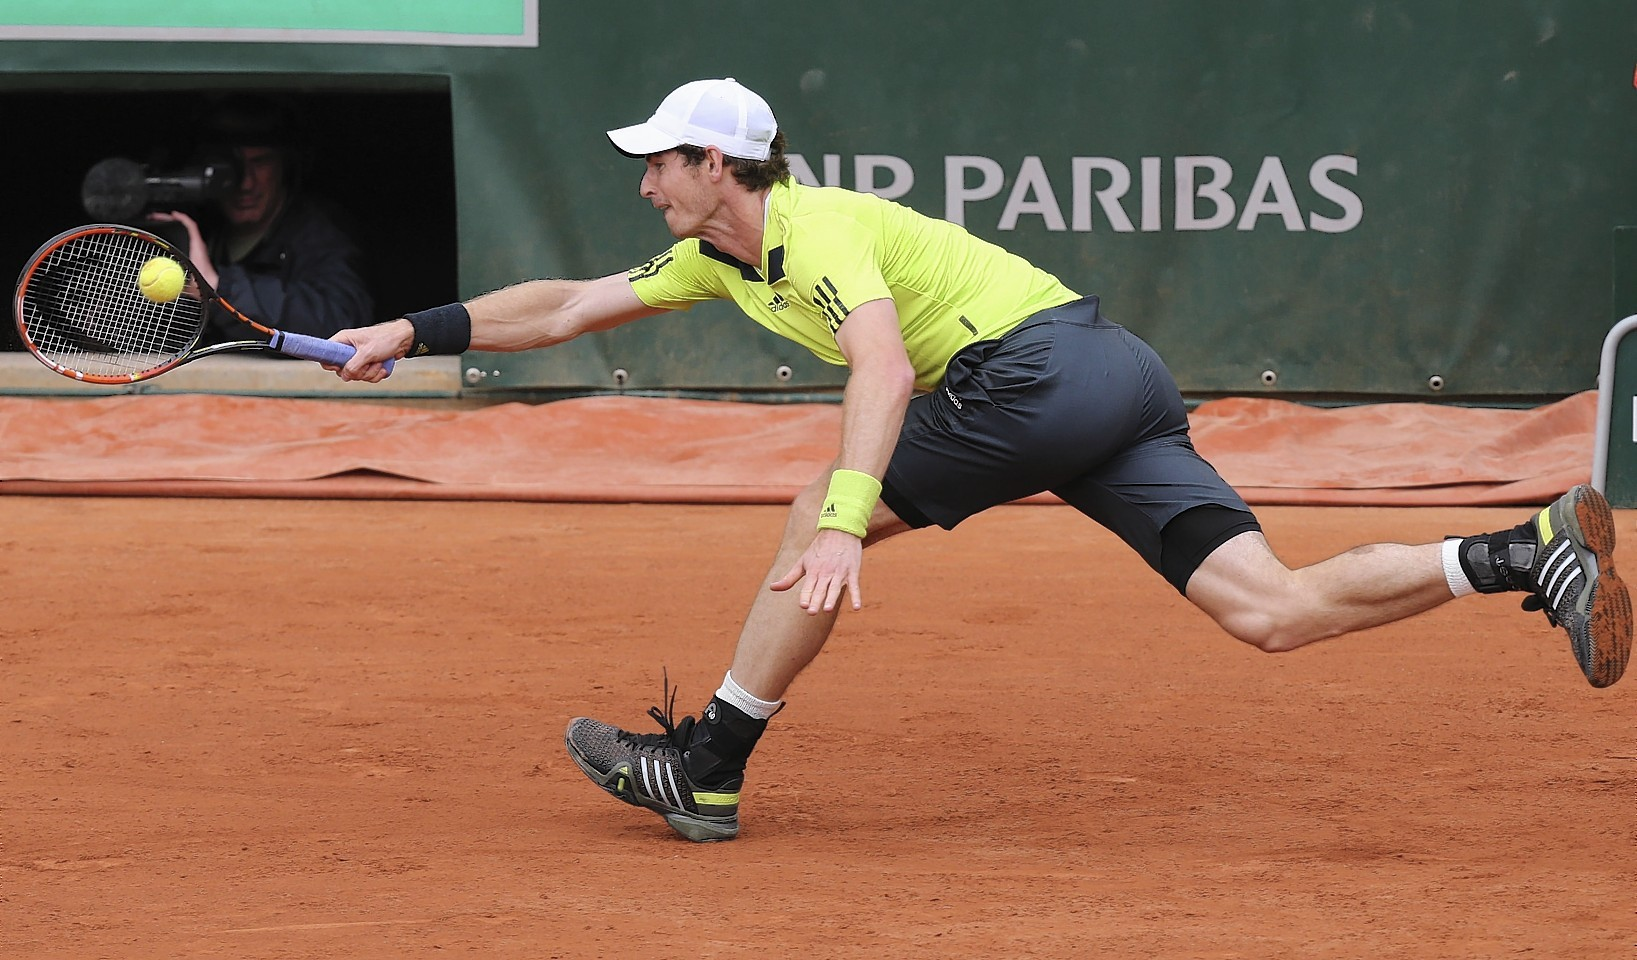 Andy Murray will face 28th seed Philipp Kohlschreiber in the last 32